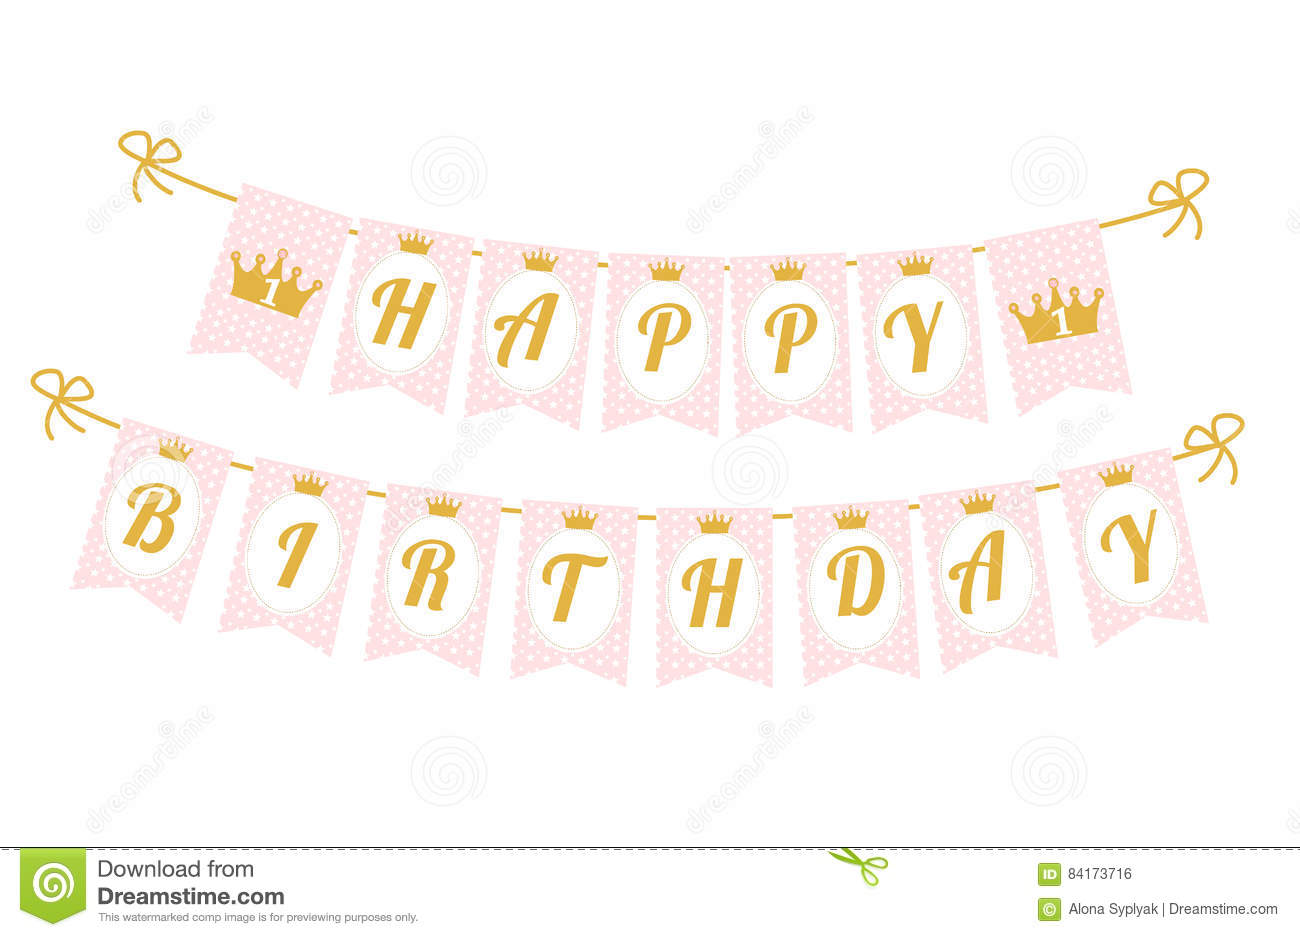 cute pennant banner as flags with letters happy birthday in